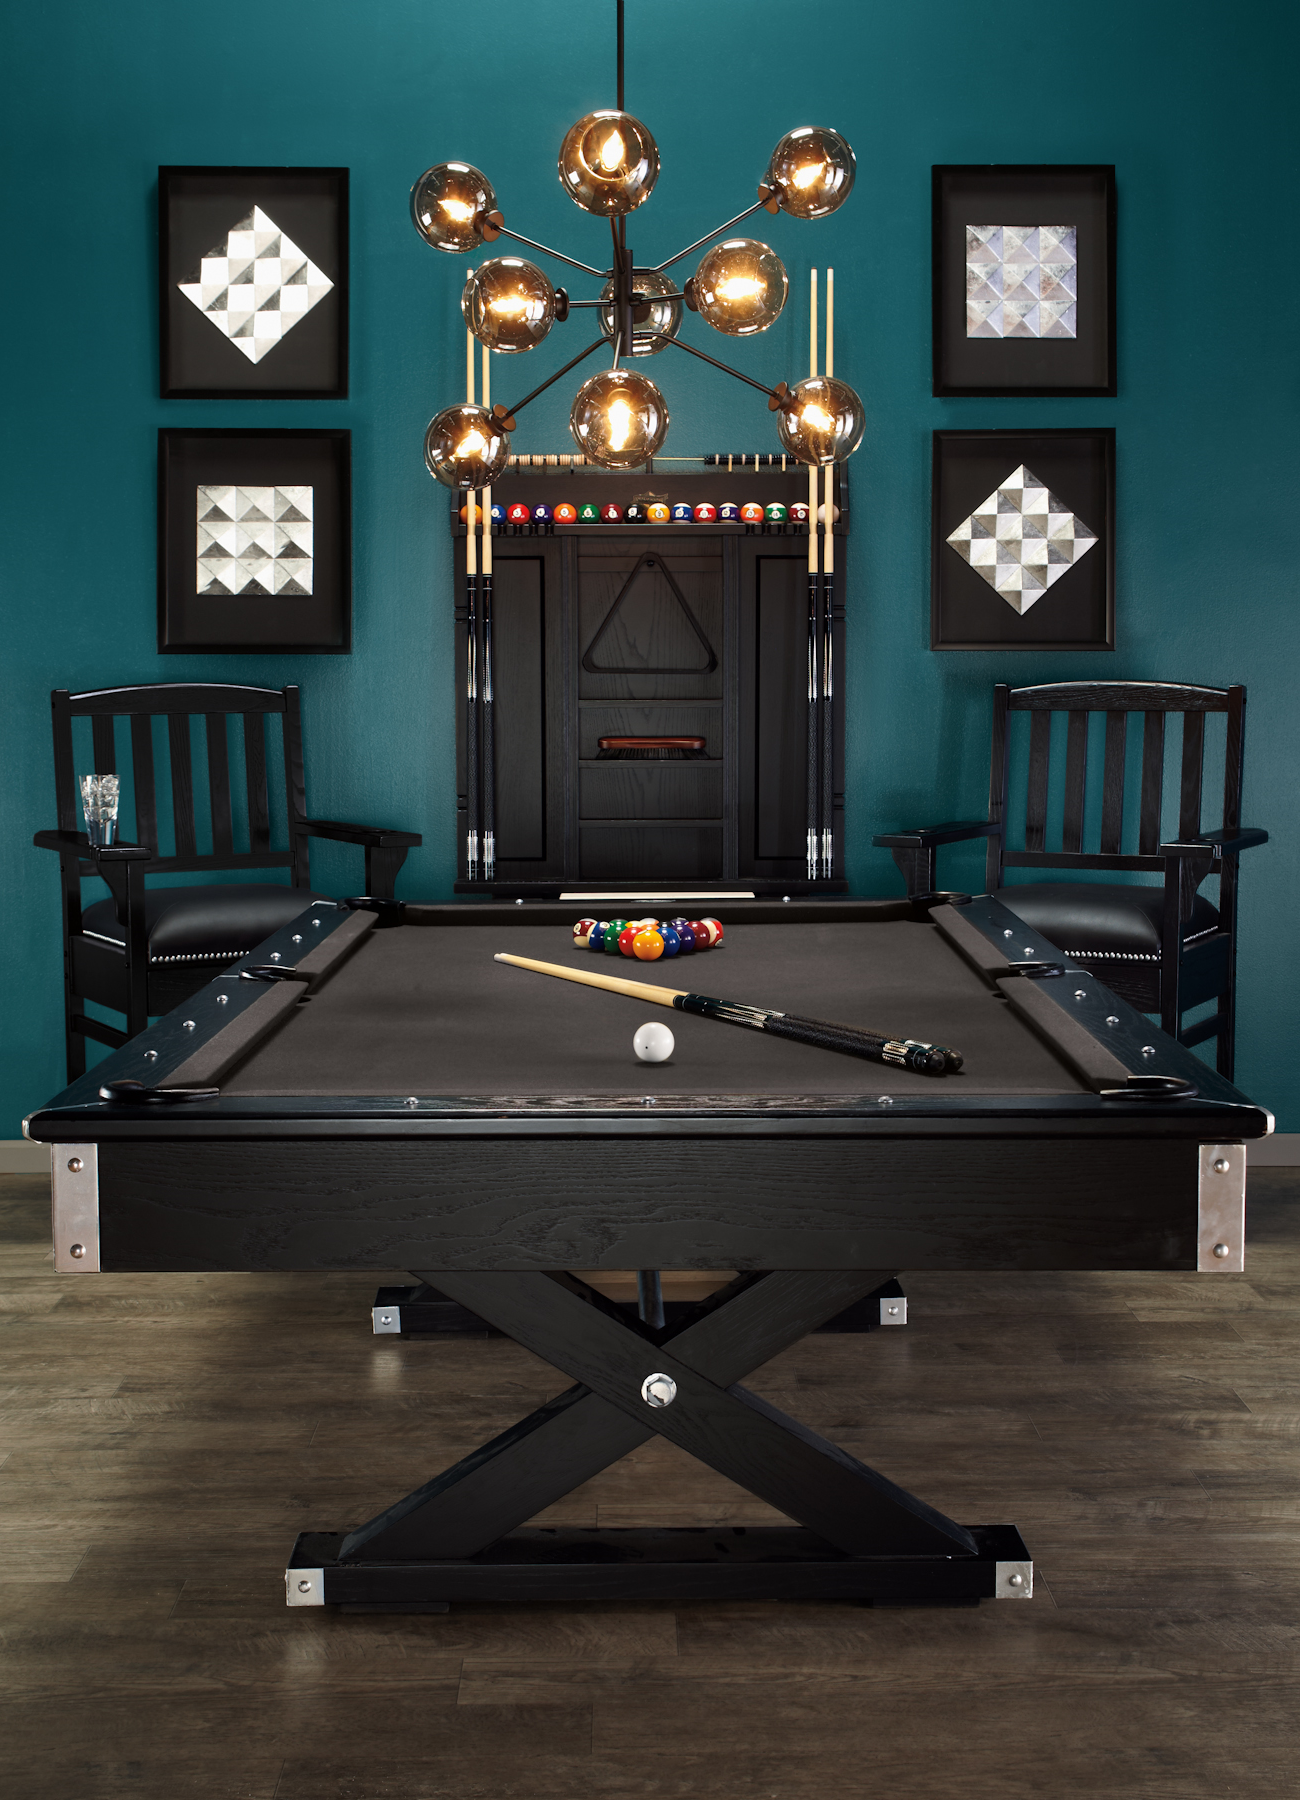 Design Your Room Game: Bring Your Game Room To The Next Level Of Style. You Won't